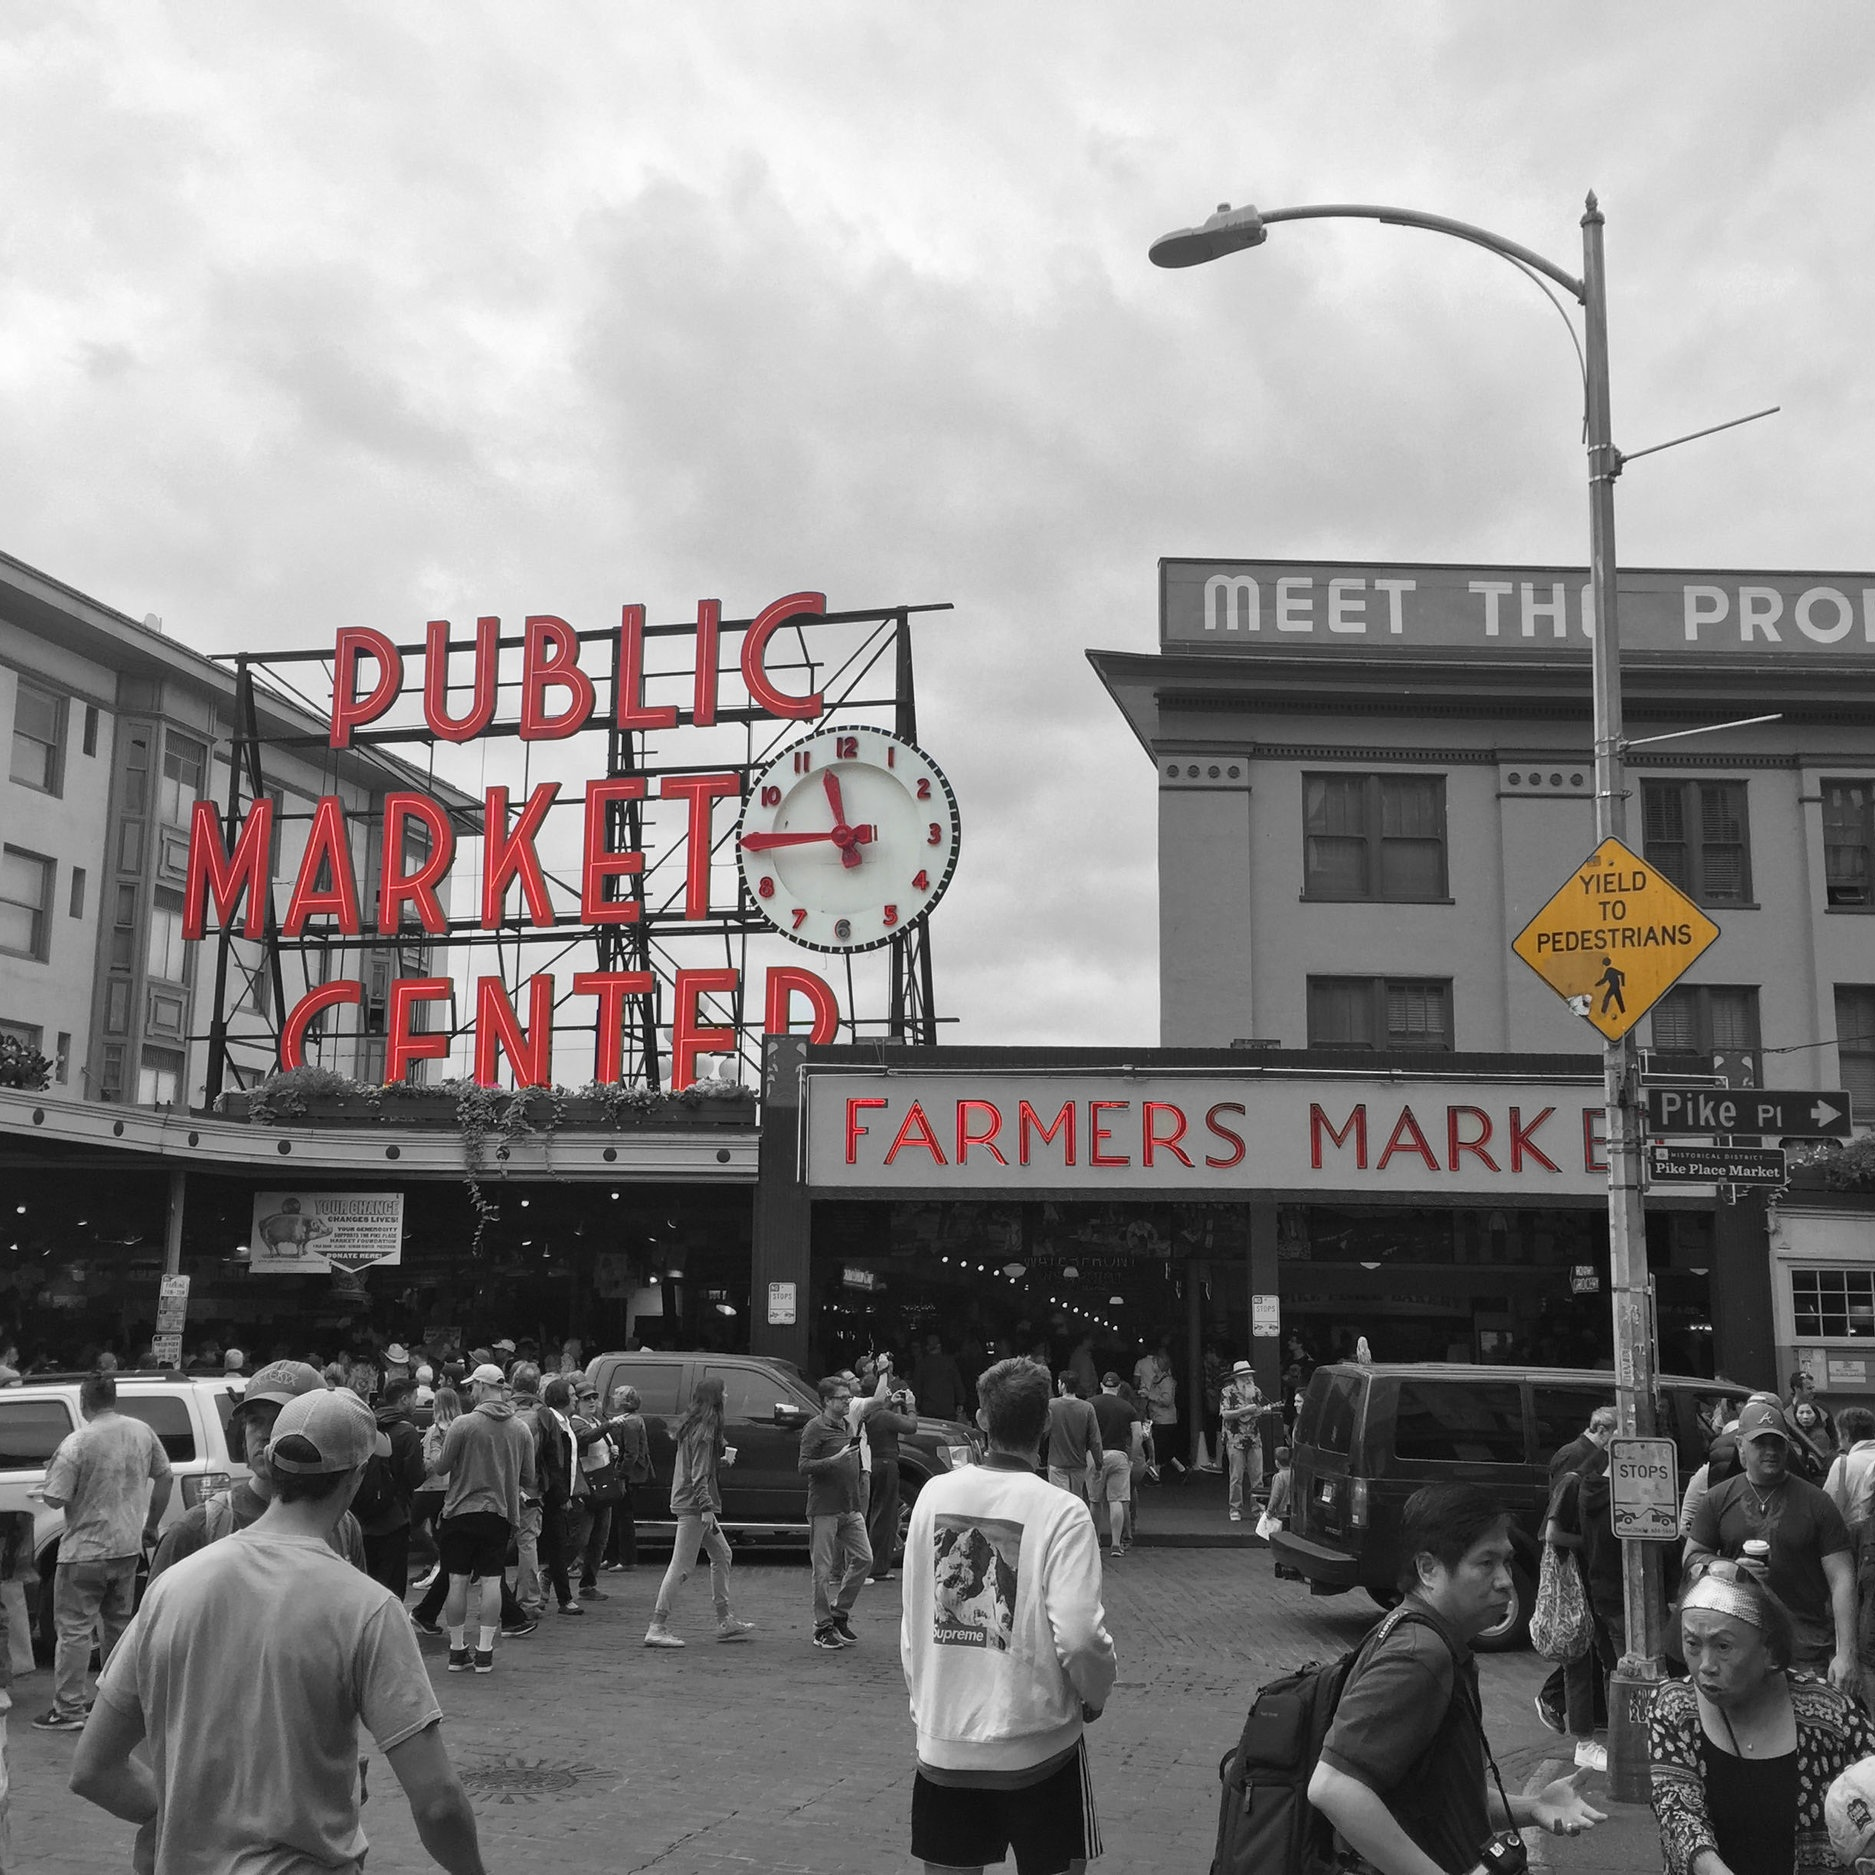 A pike yielding to pedestrians - Seattle, WA. USA (Captured by Emily Sproule)